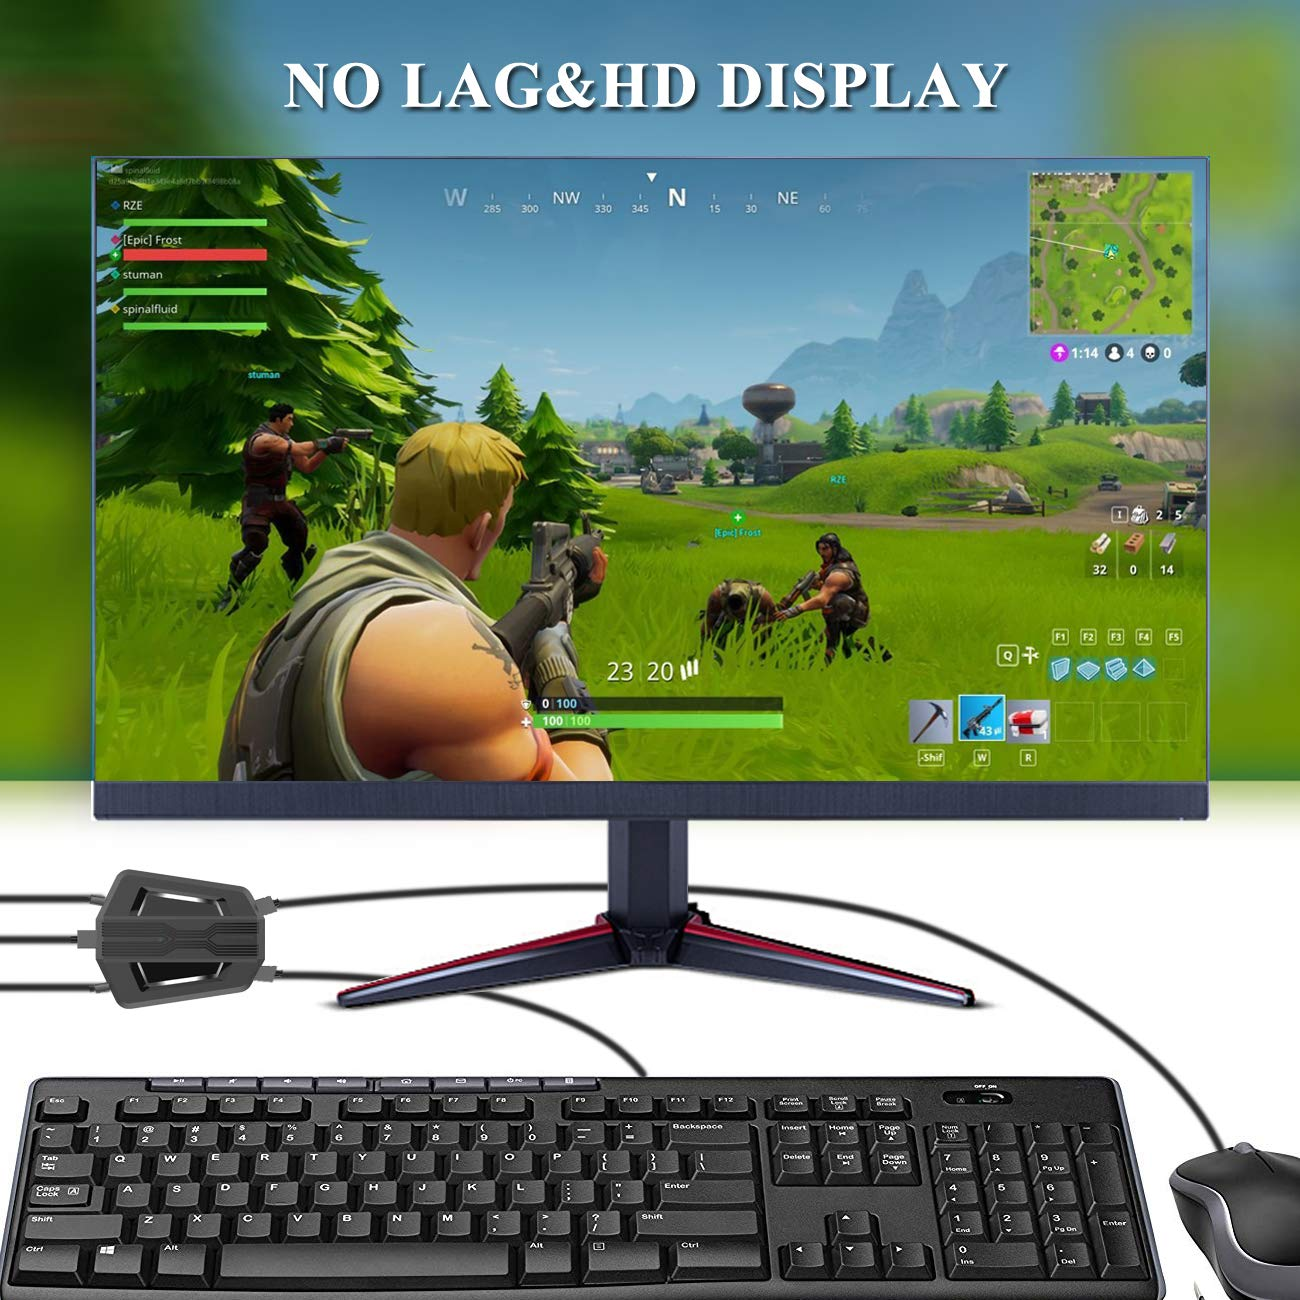 Dutison Keyboard And Mouse Adapter Compatible With Ps4 Xbox One Ninten Onpick